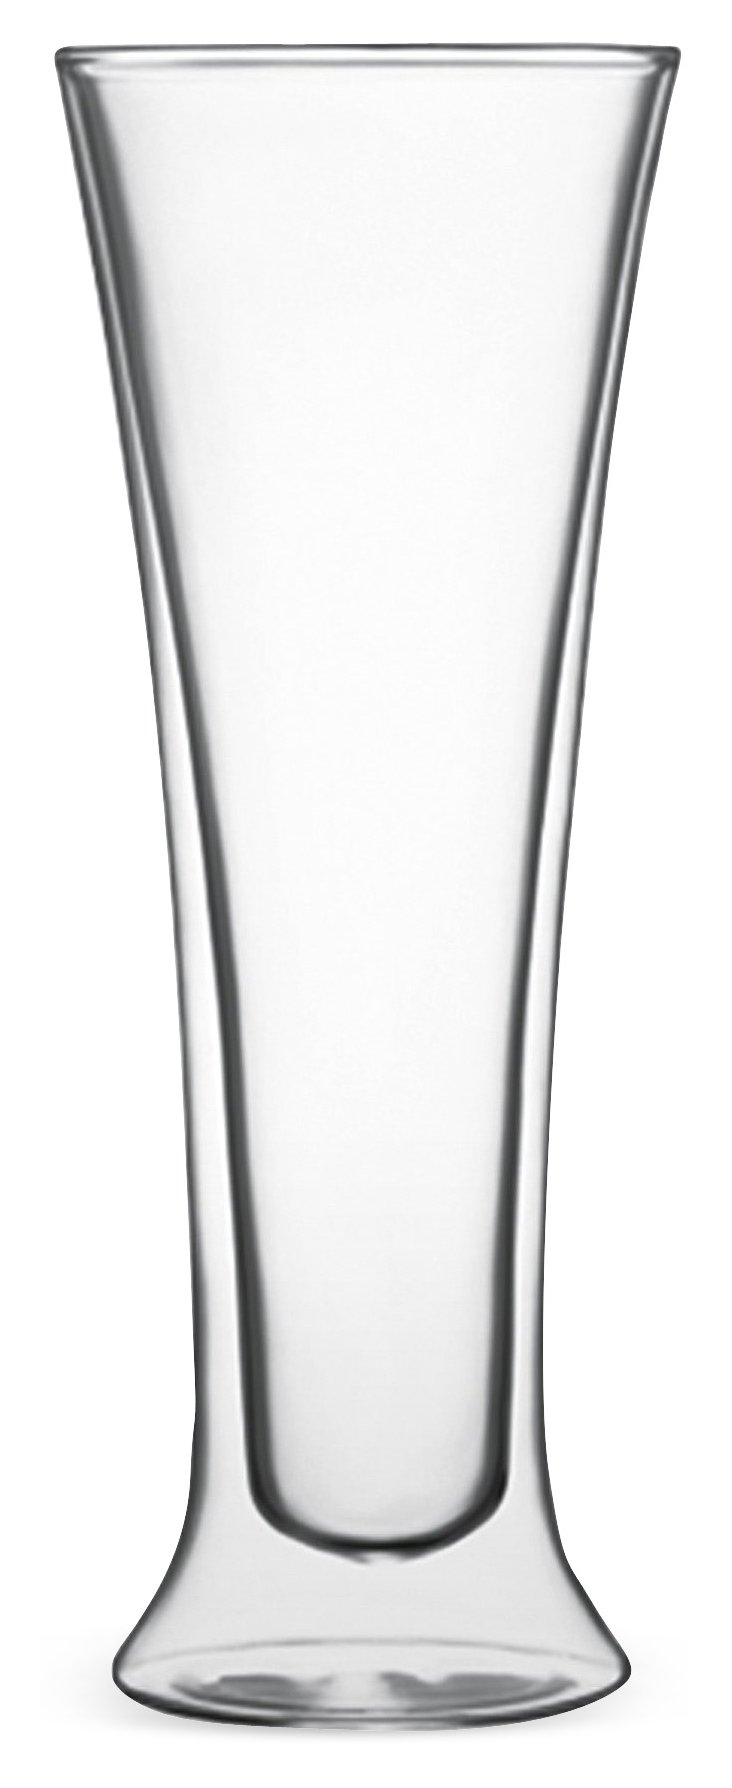 S/2 Double-Wall Pilsner Glasses